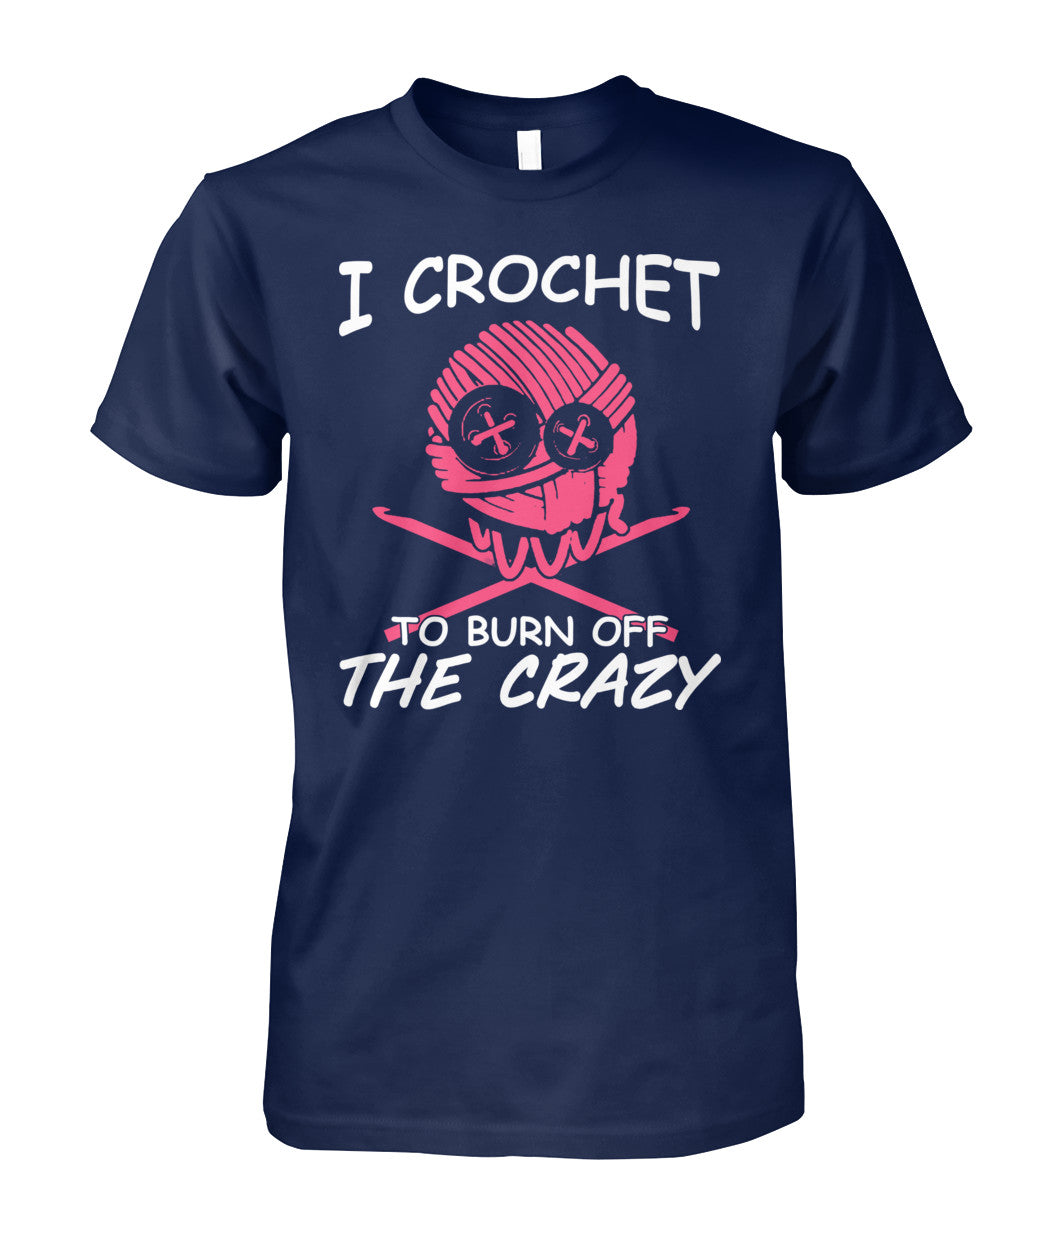 CROCHET- I CROCHET TO BURN OFF THE CRAZY